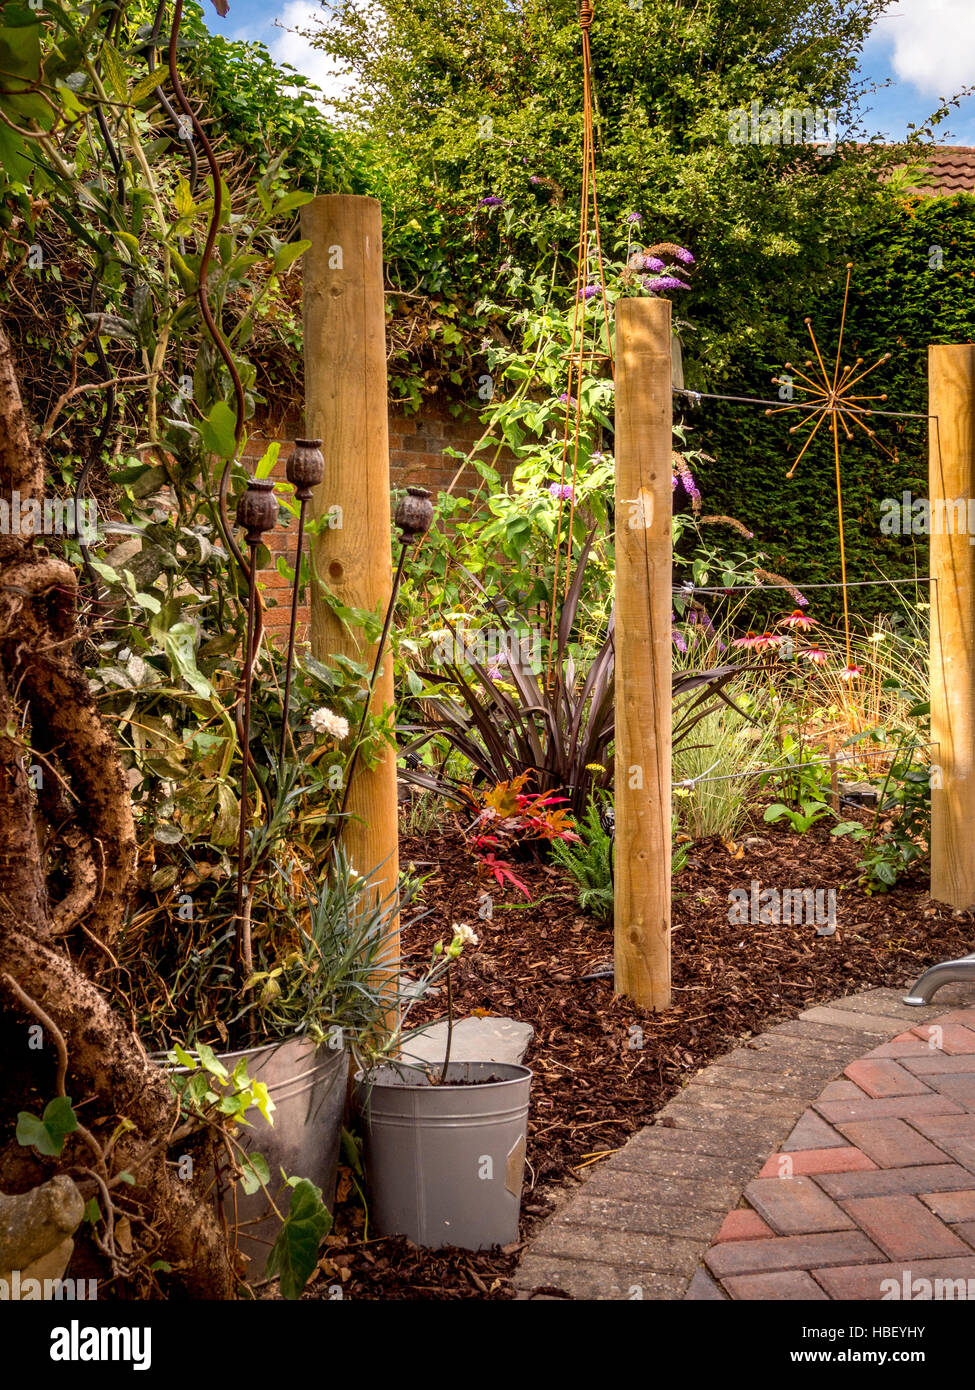 Garden areas divided using wooden stakes to create outdoor rooms in modern contemporary design - Stock Image